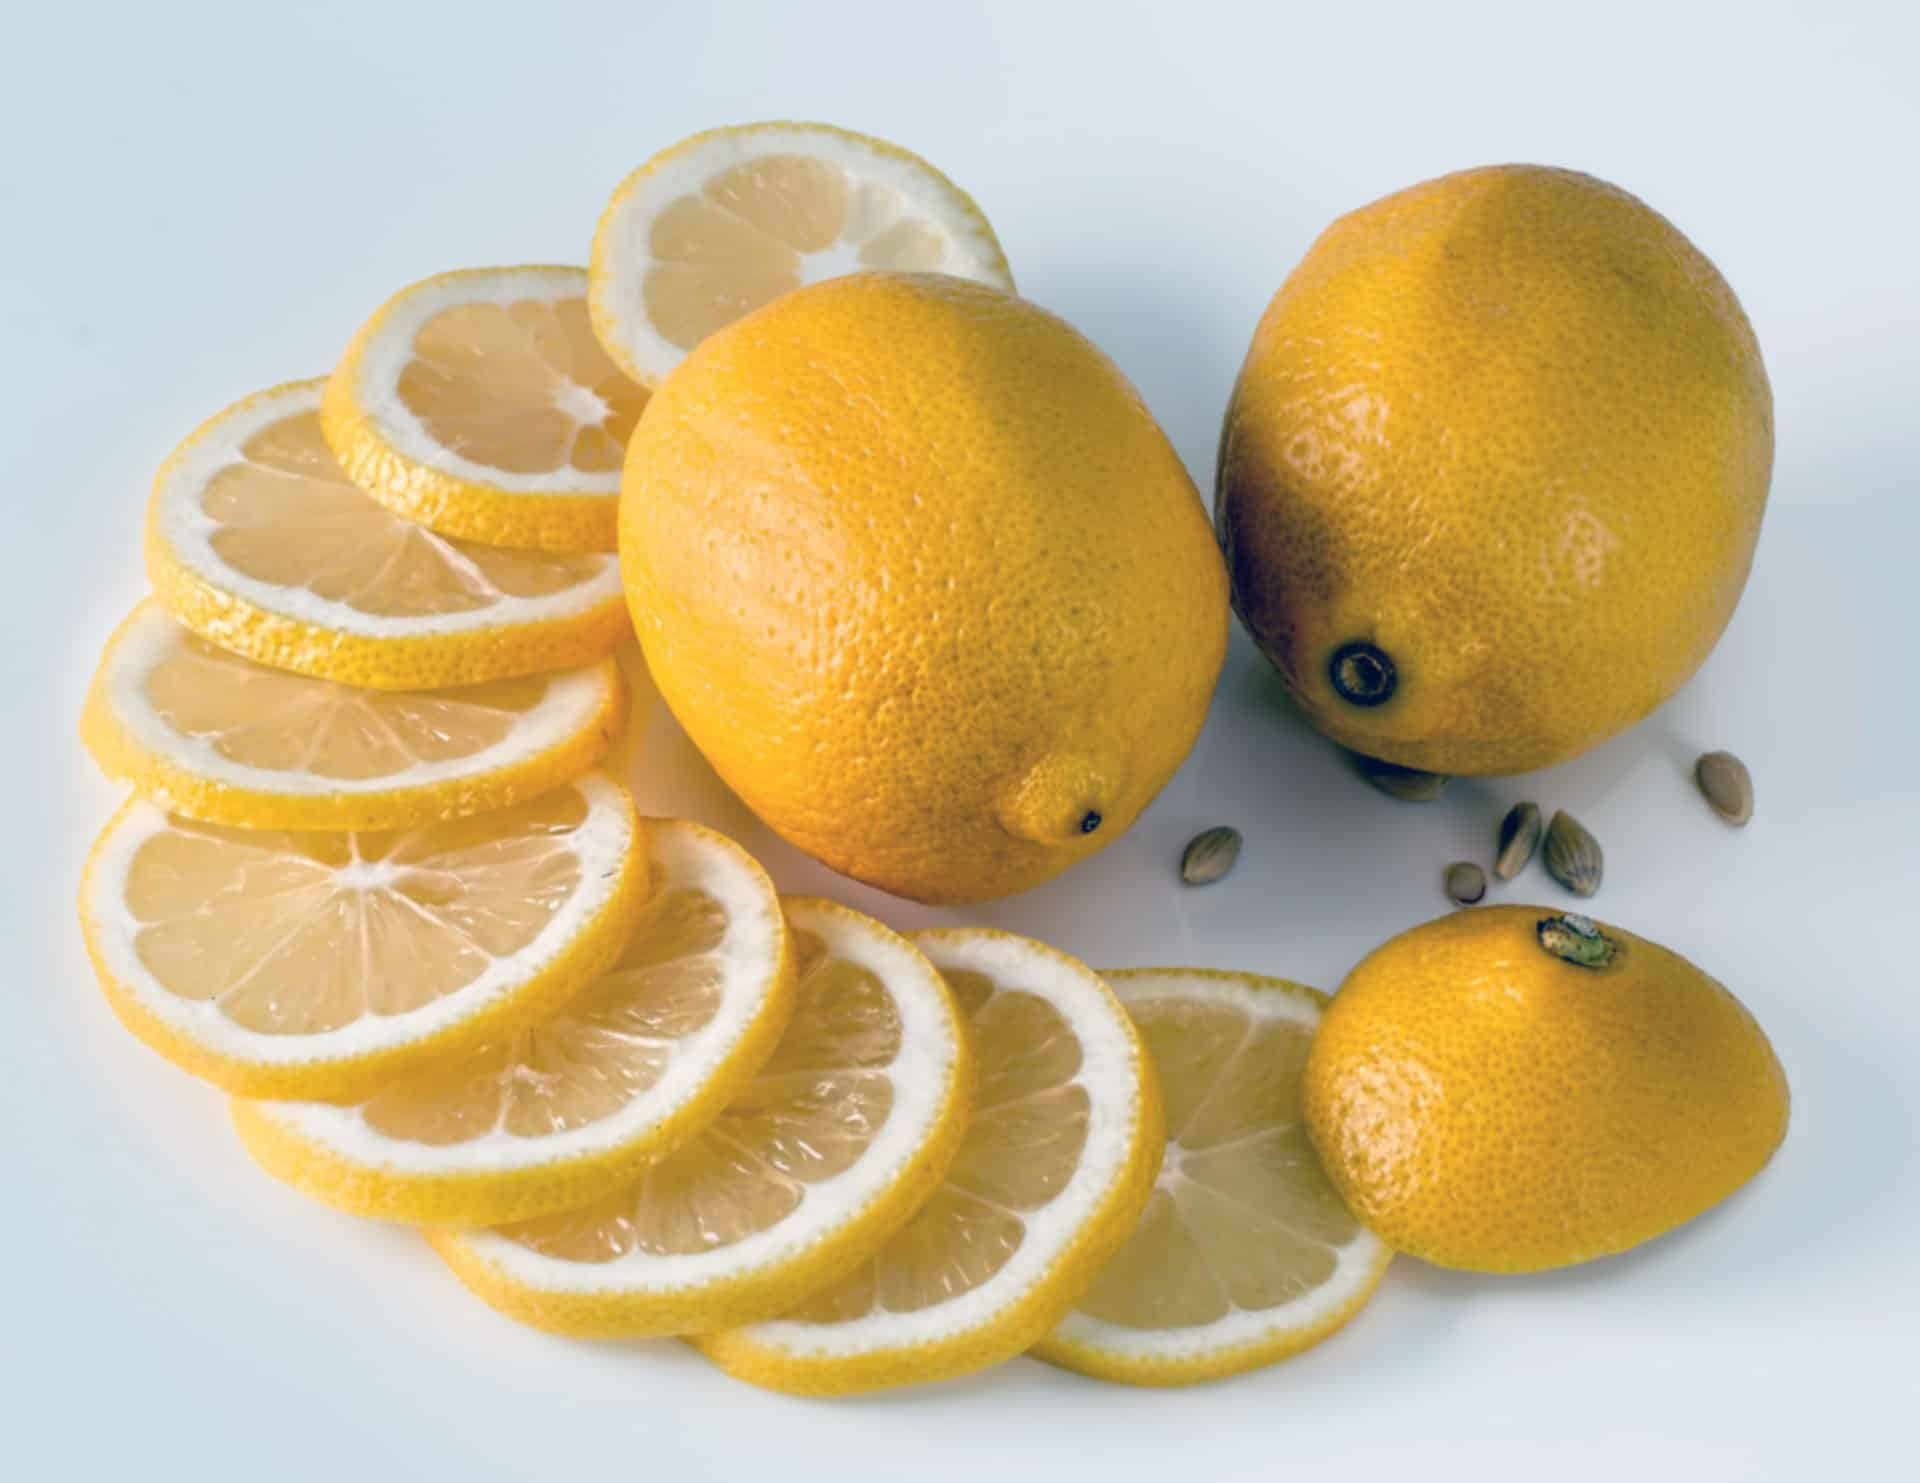 The special functions of lemon for elegance